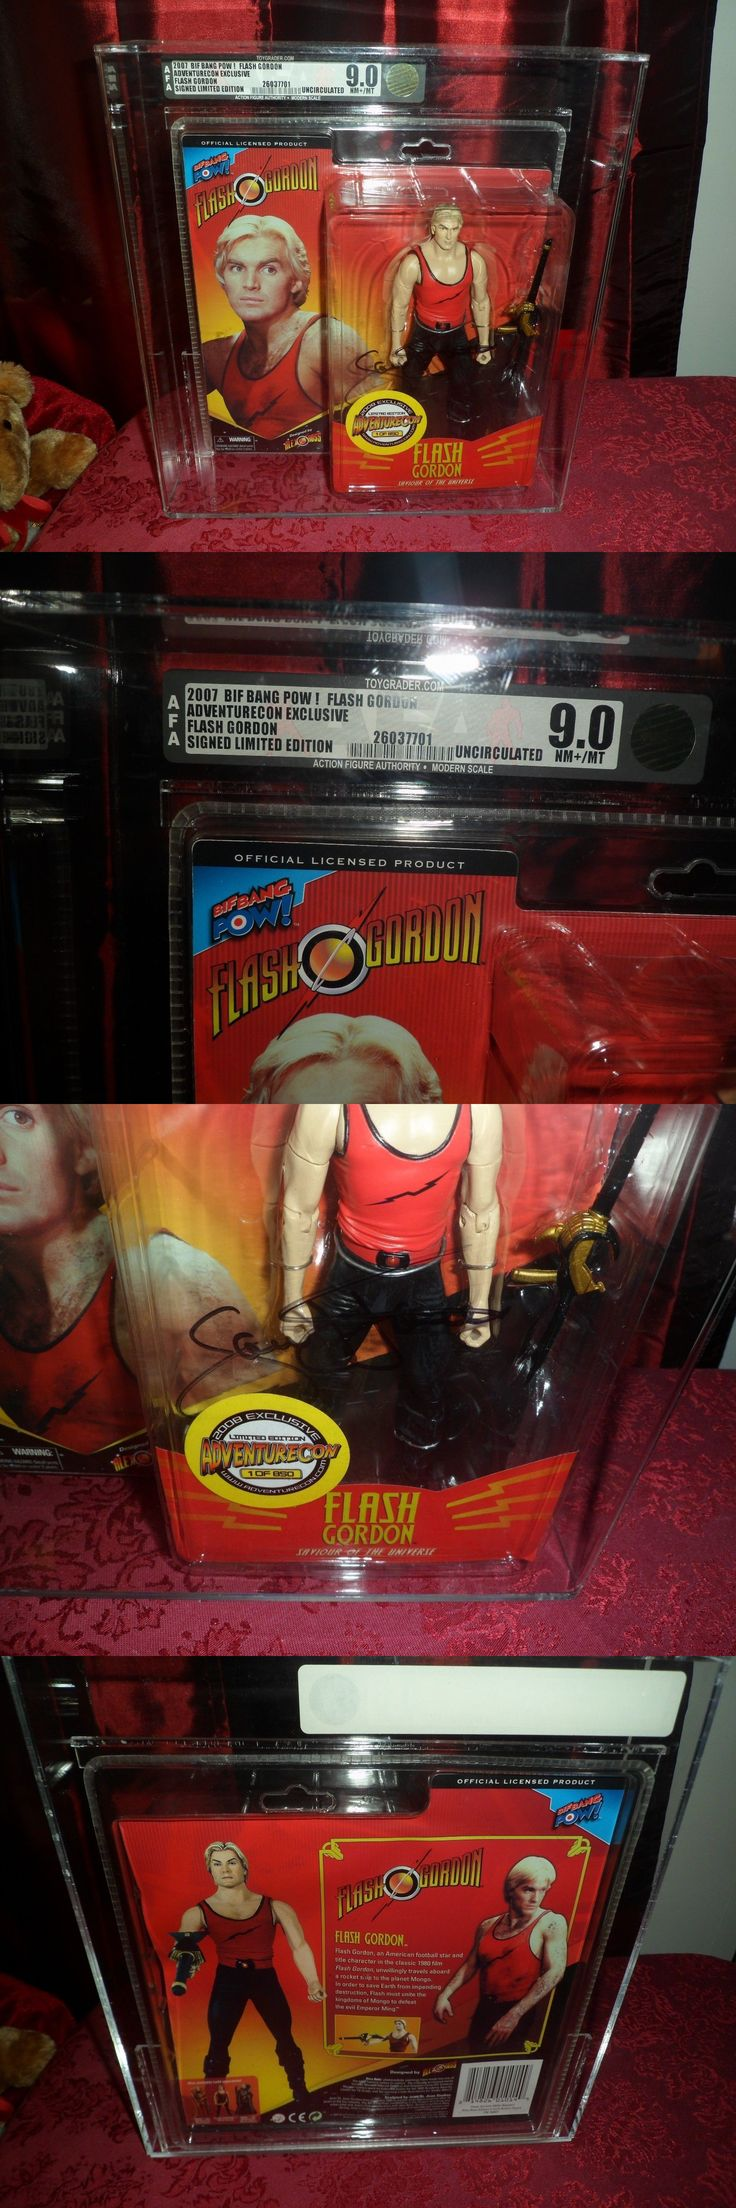 Lead Toys and Figures 152938: Flash Gordon 2007 Afa 9.0 Rare Action Figure *Autographed* By Sam J. Jones -> BUY IT NOW ONLY: $249.99 on eBay!